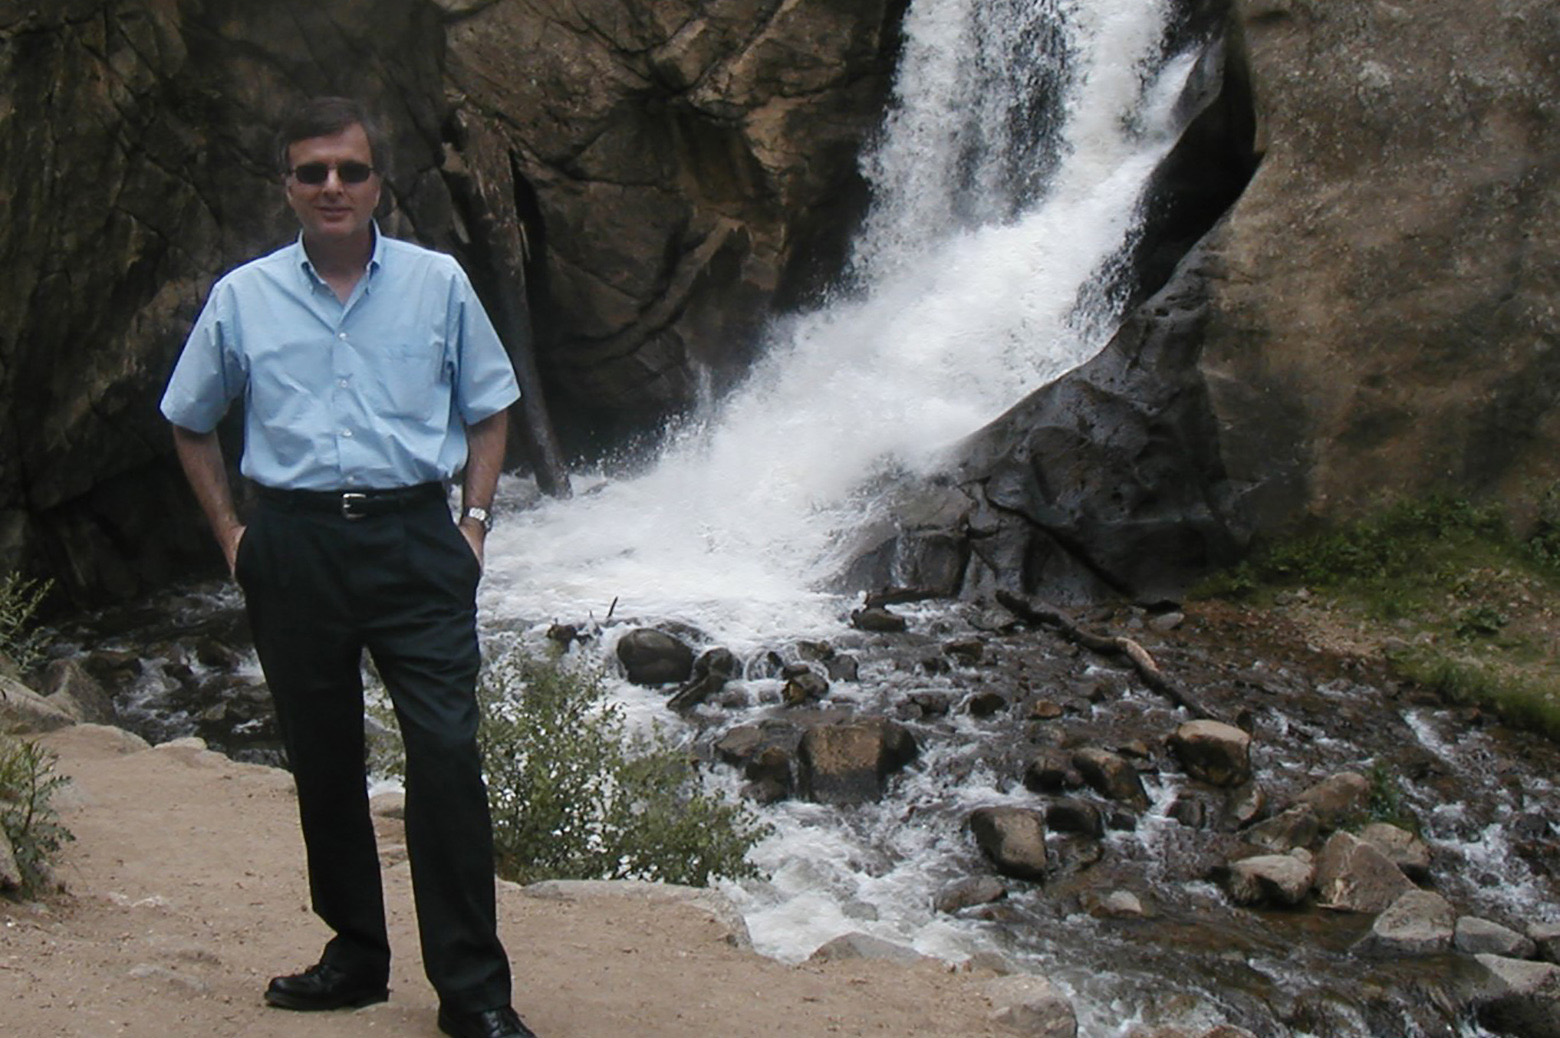 NIk Katopodes stands in front of a waterfall in Boulder, CO